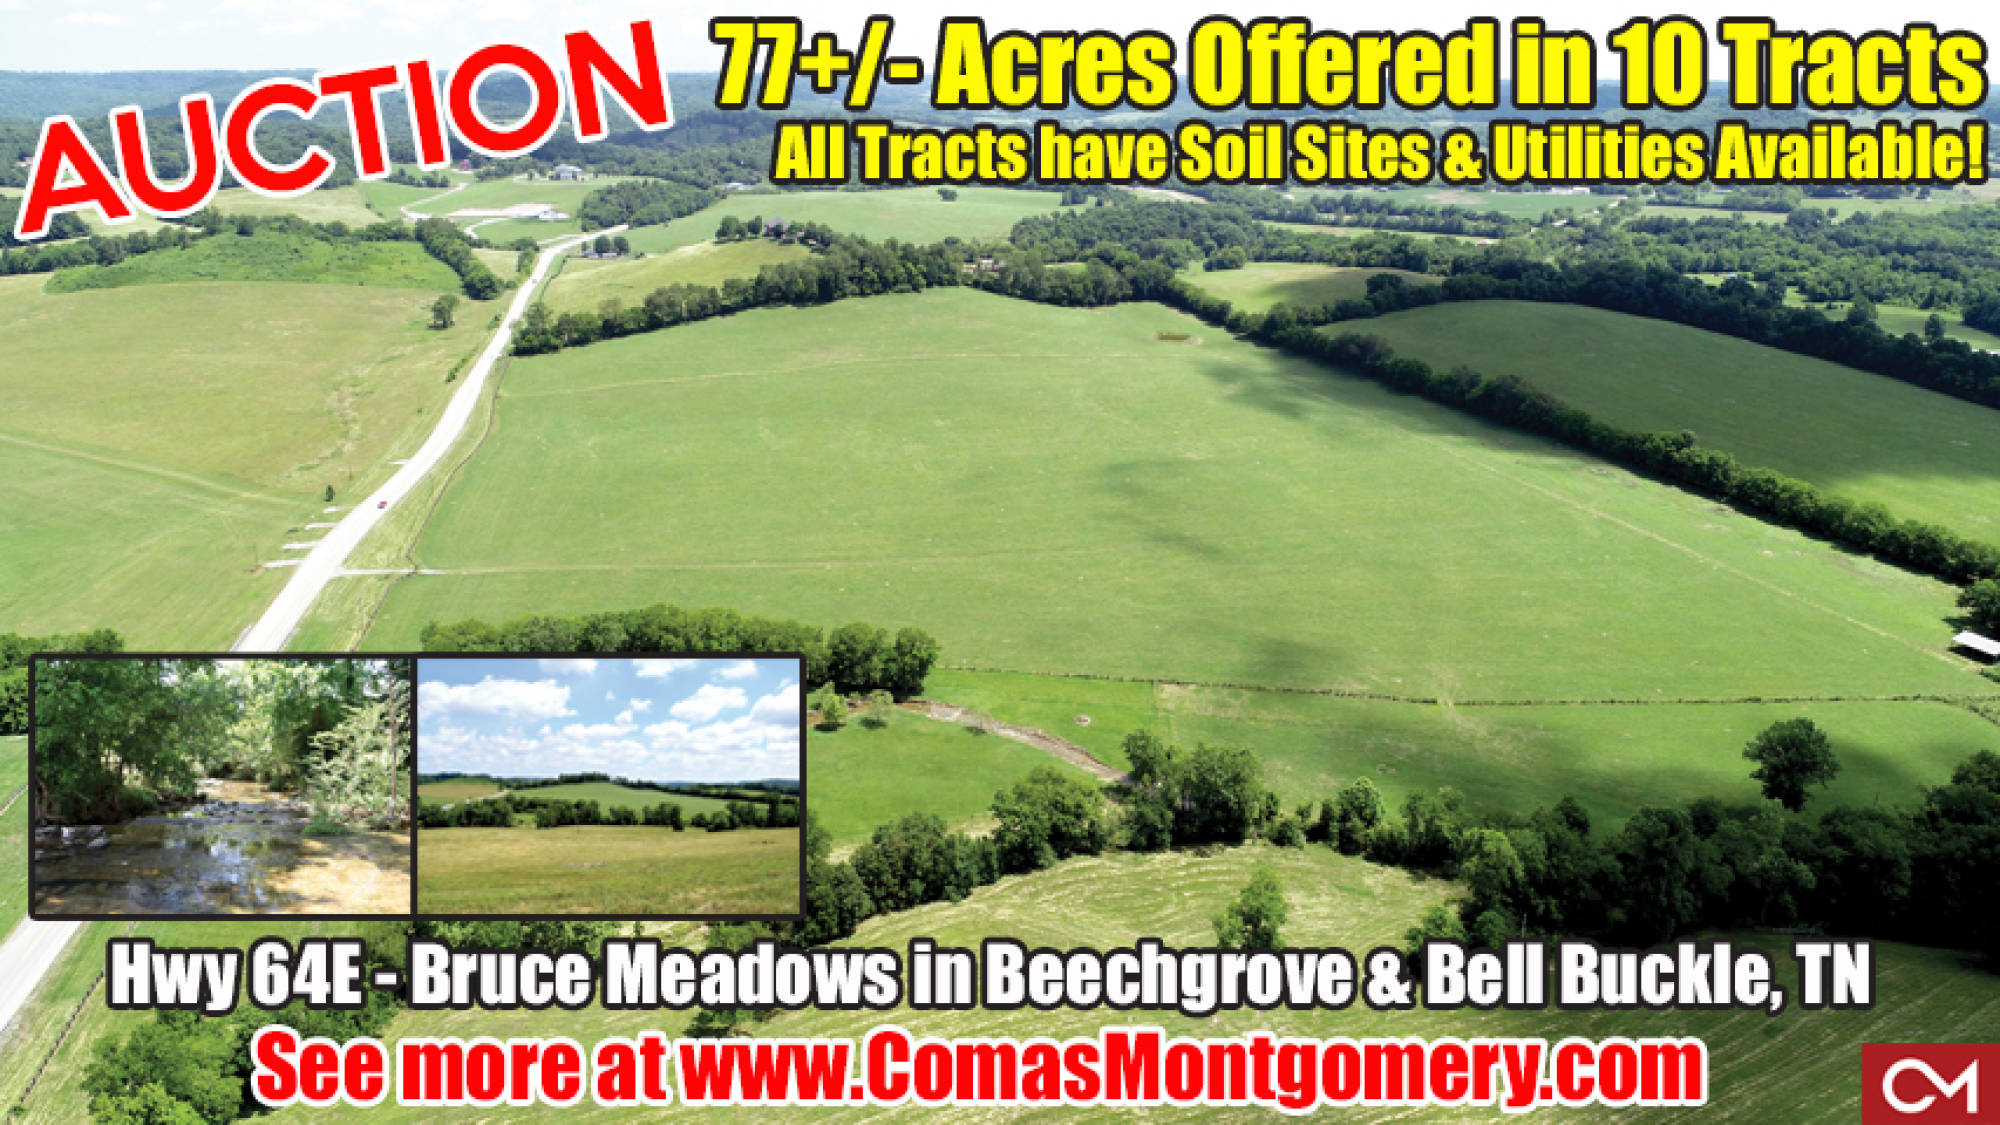 Land, Tracts, Acres, Beechgrove, Bell Buckle, Webb School, Real Estate, For Sale, Auction, Tennessee, Comas, Montgomery, Creek, Pond, Barn, Pasture